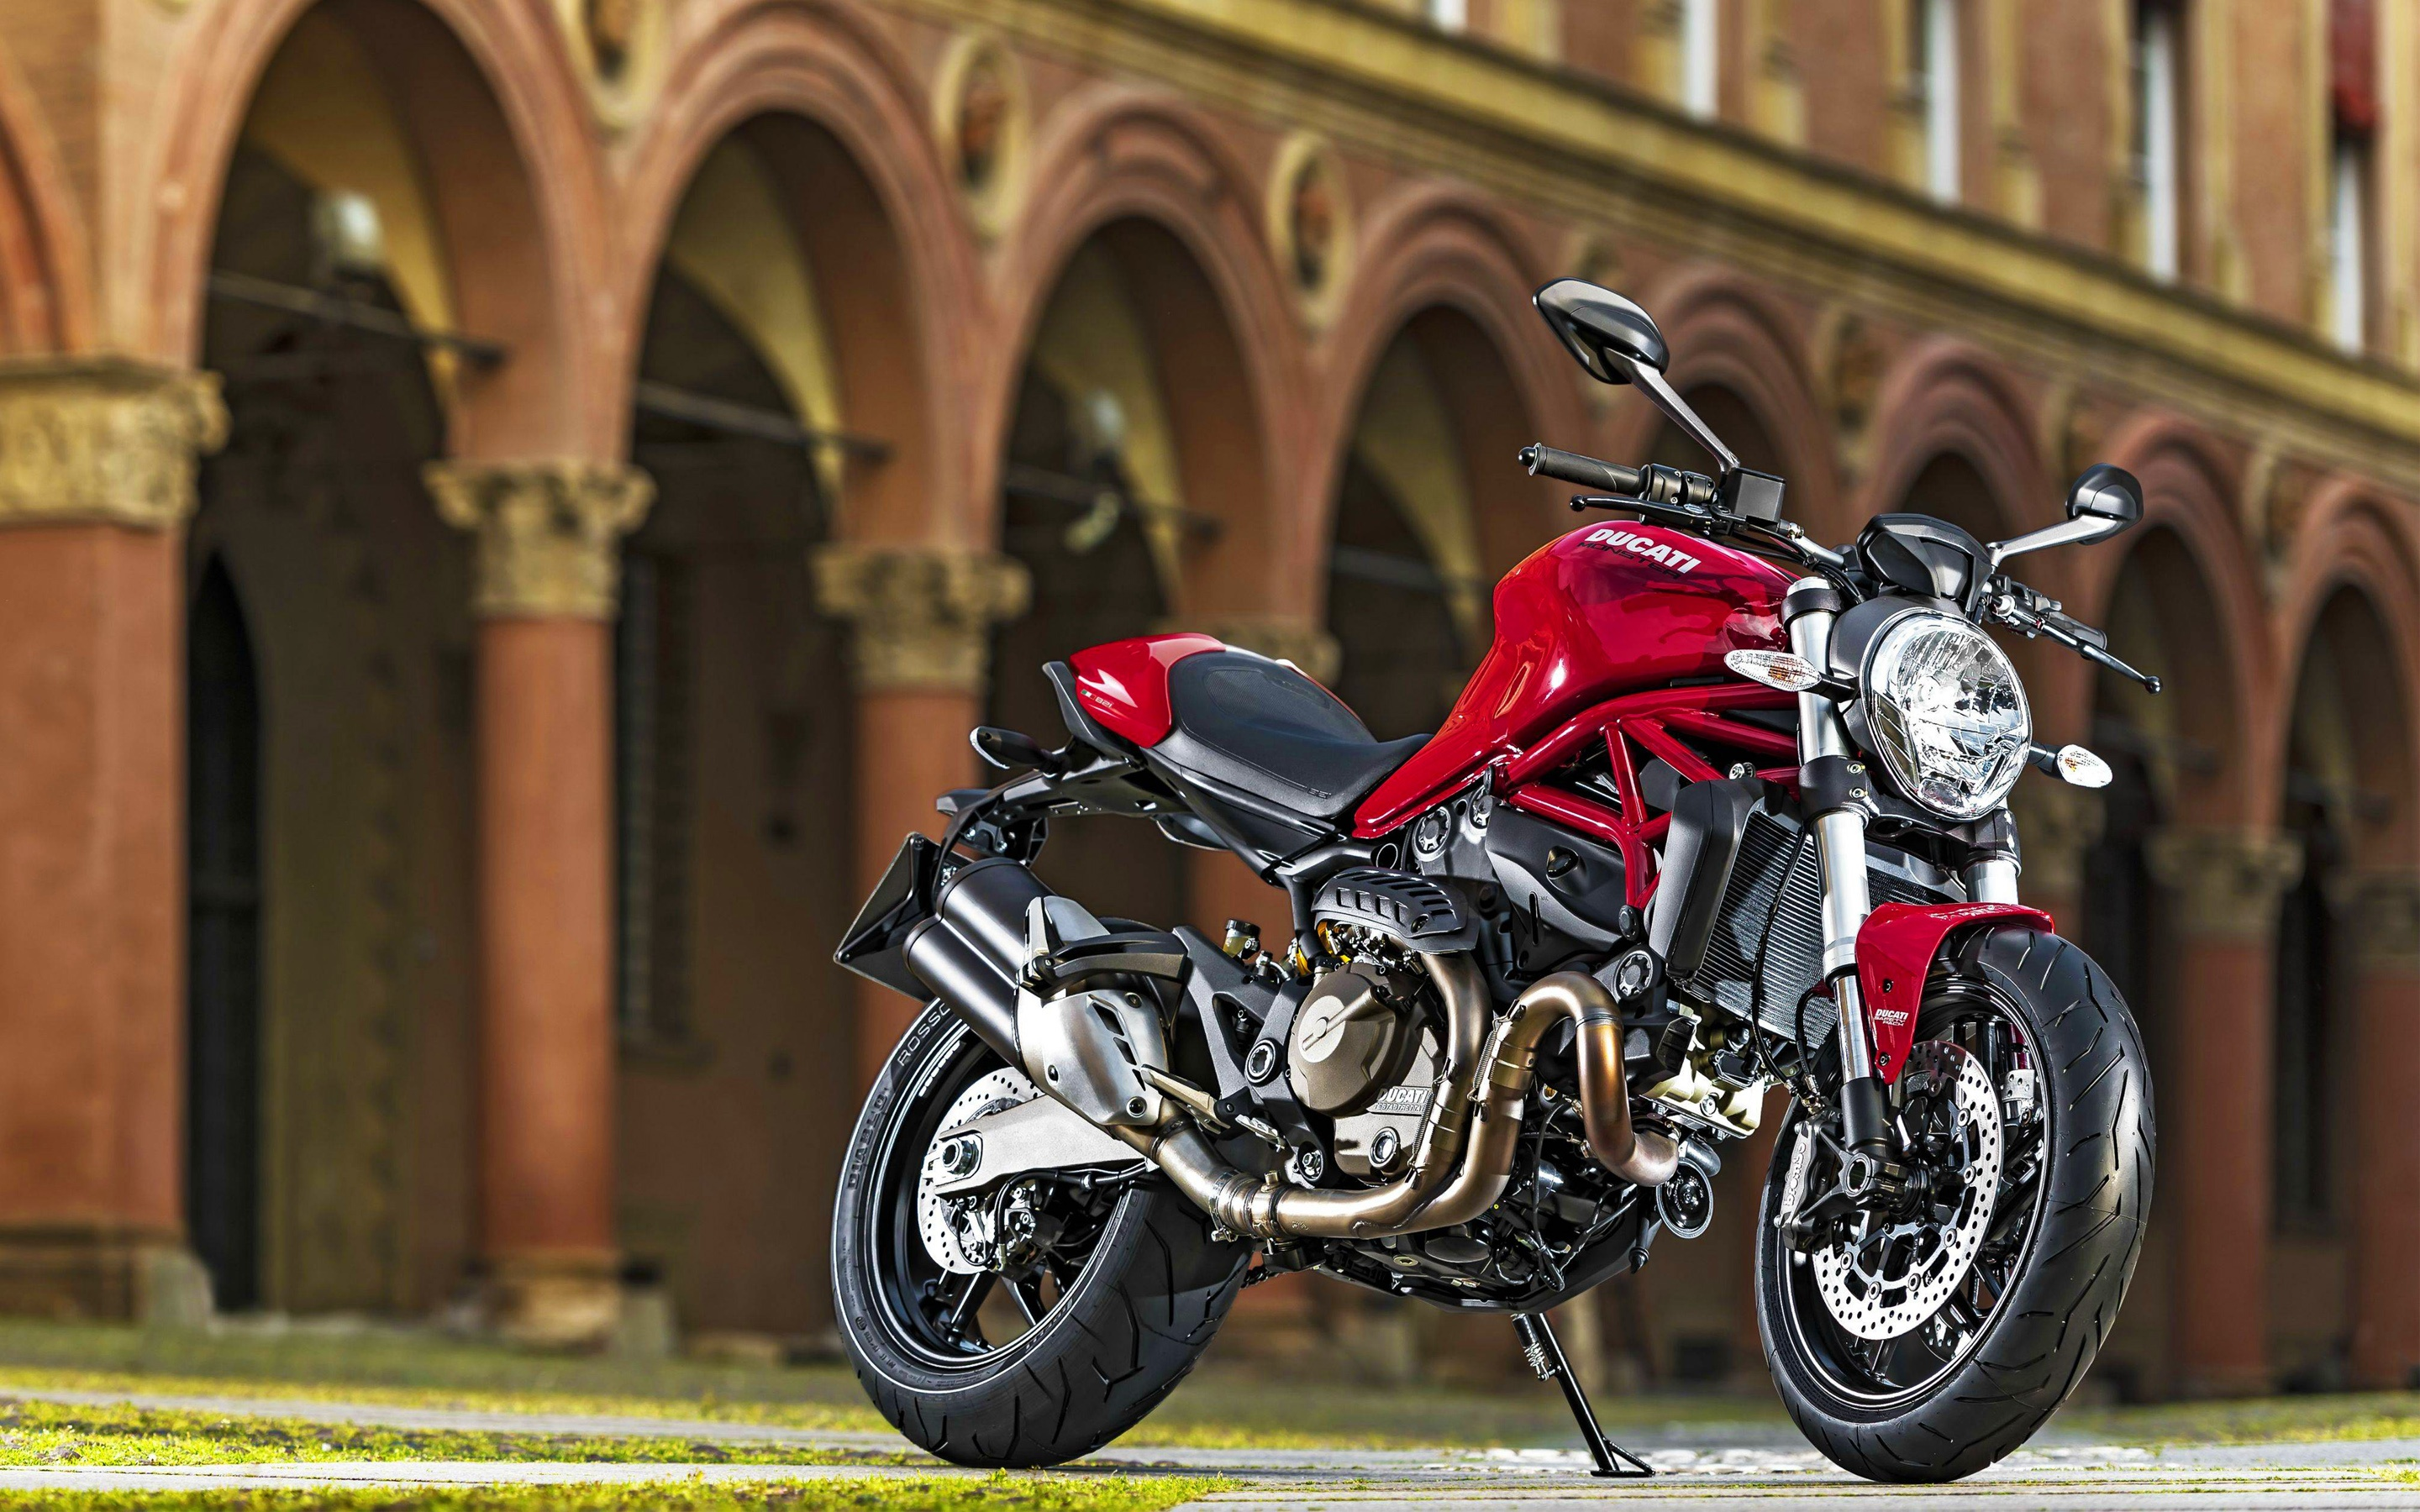 2015 Ducati Monster 821 Wallpapers